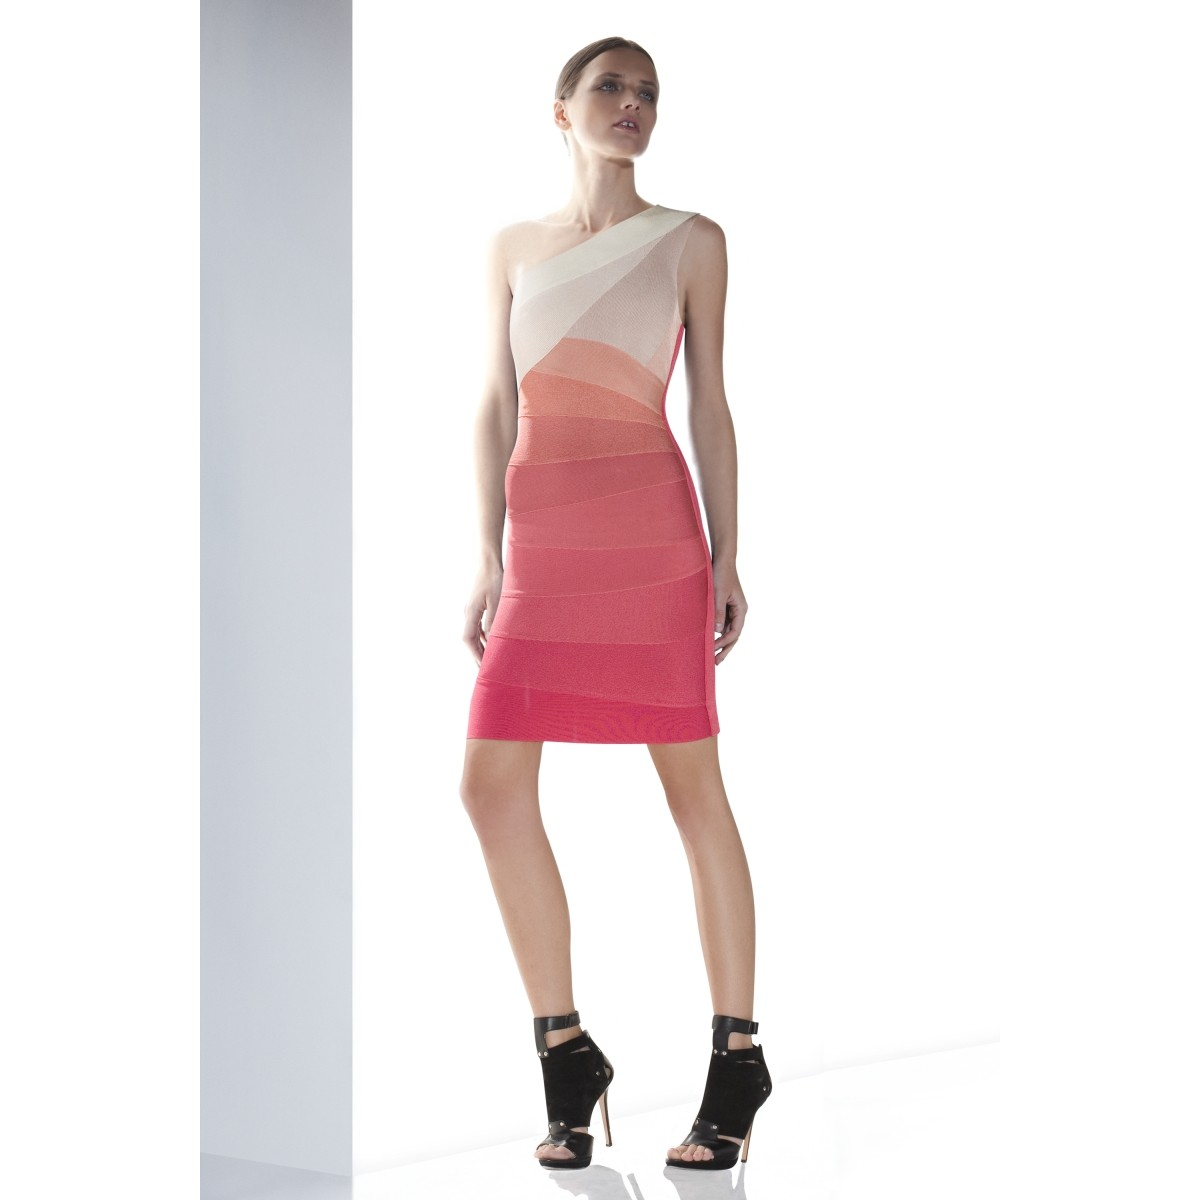 Herve Leger Alexis One-Shoulder Ombre Bandage Dress